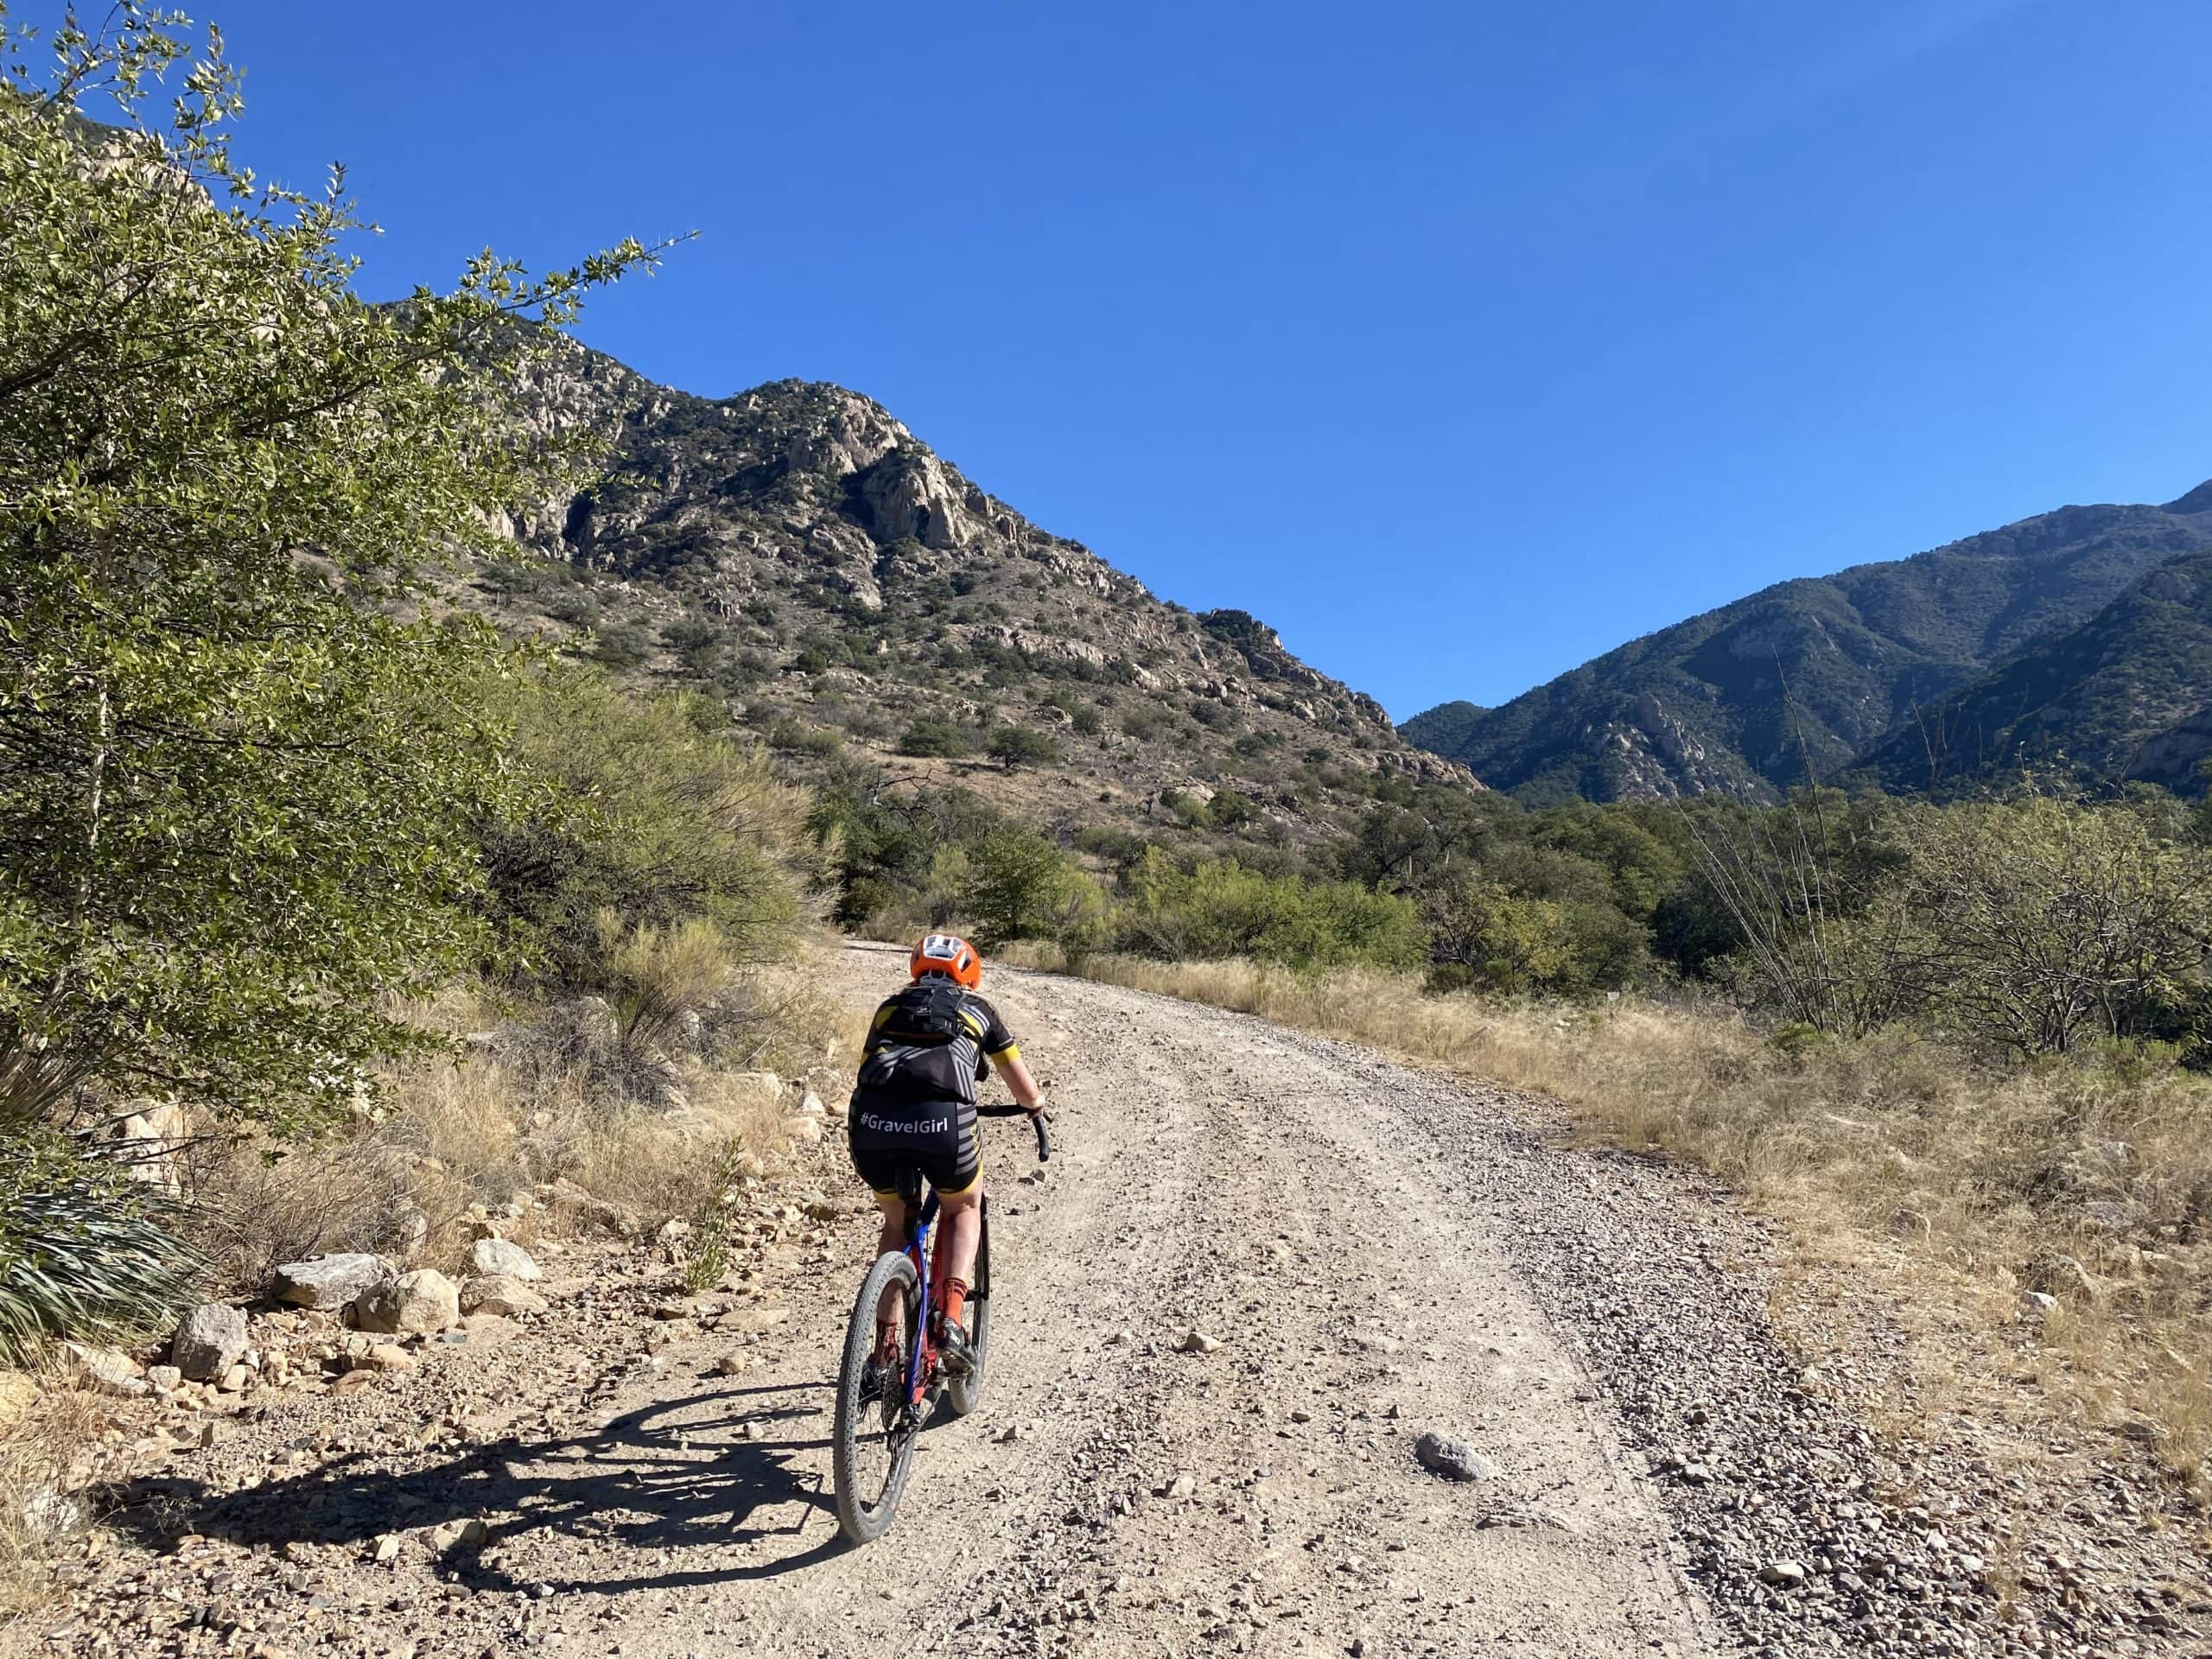 Cyclist on gravel road with Santa Rita mountains in the background.